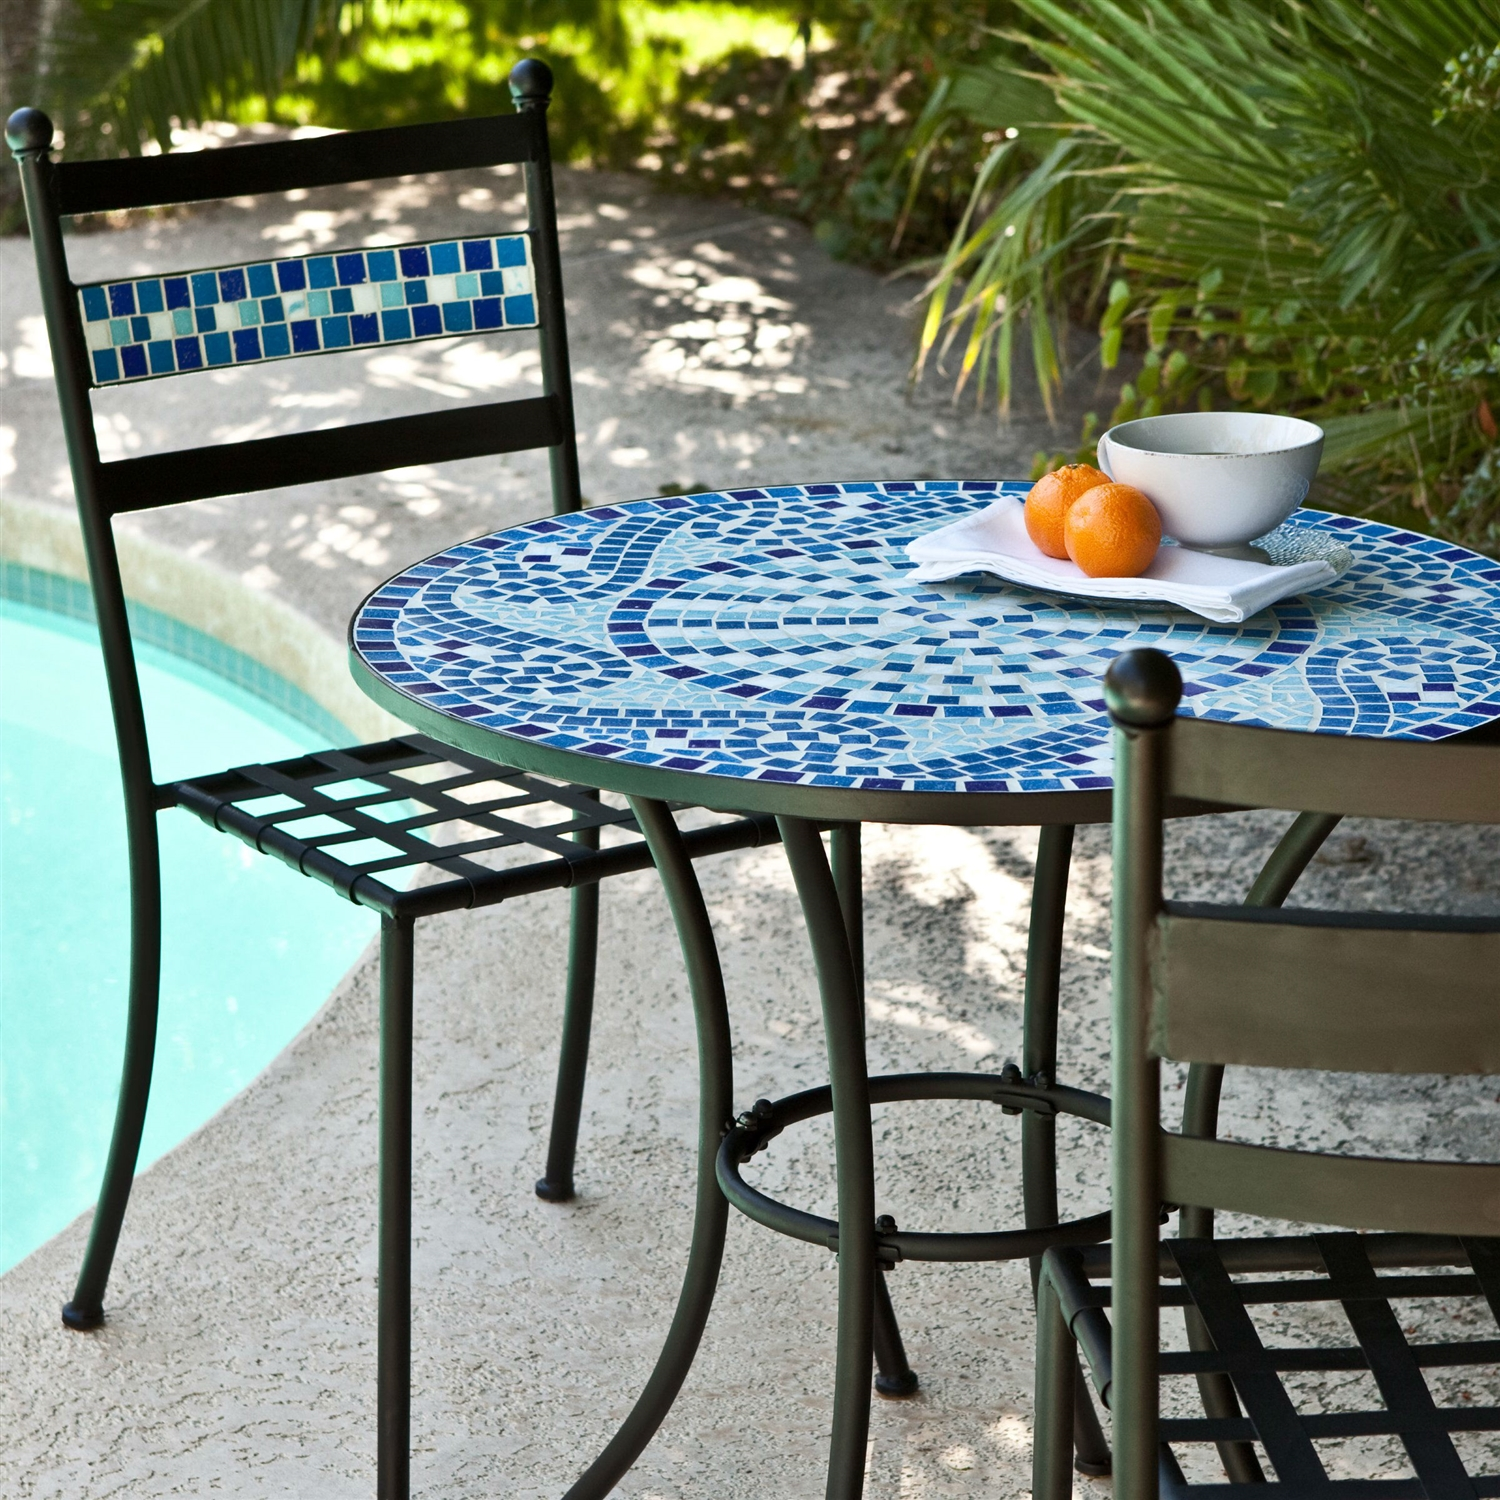 Bistro Sets outdoor 3-piece aqua blue mosaic tiles patio furniture bistro set MCRMLXN